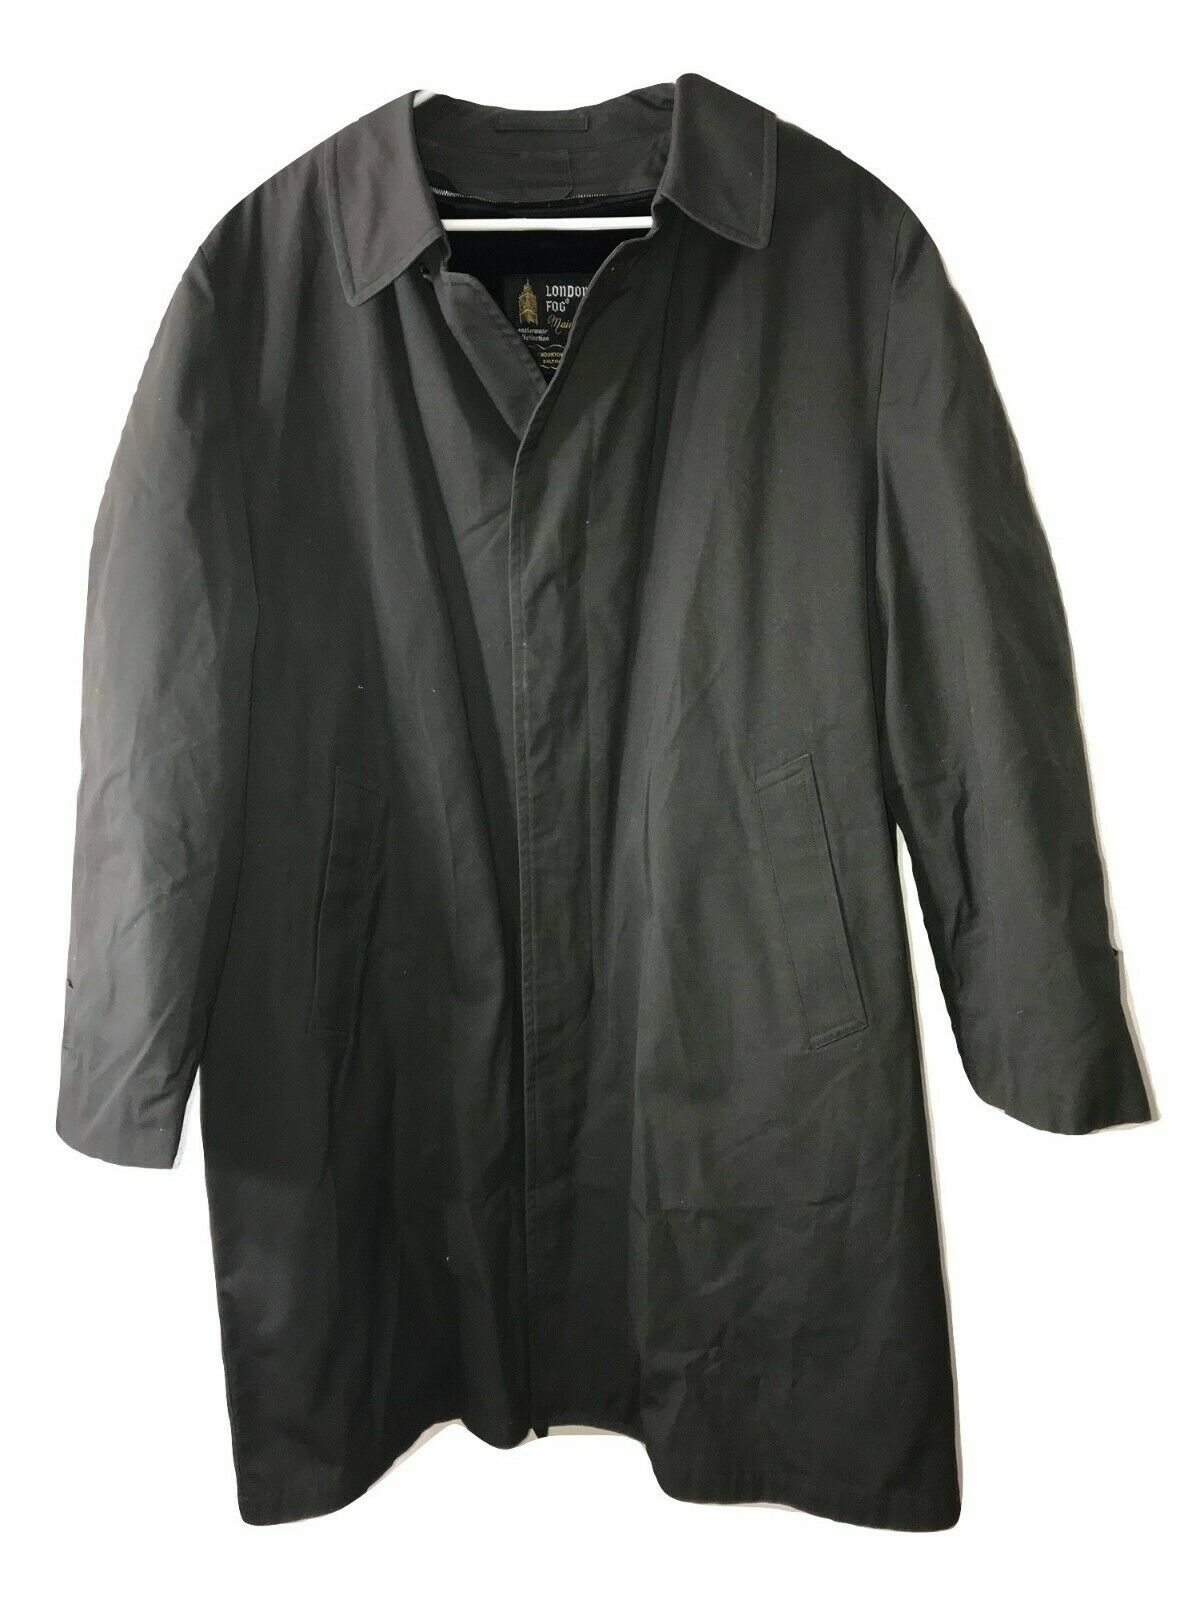 London Fog Iconic Mens Trench Coat With Removable Faux Fur Lining Green size 44